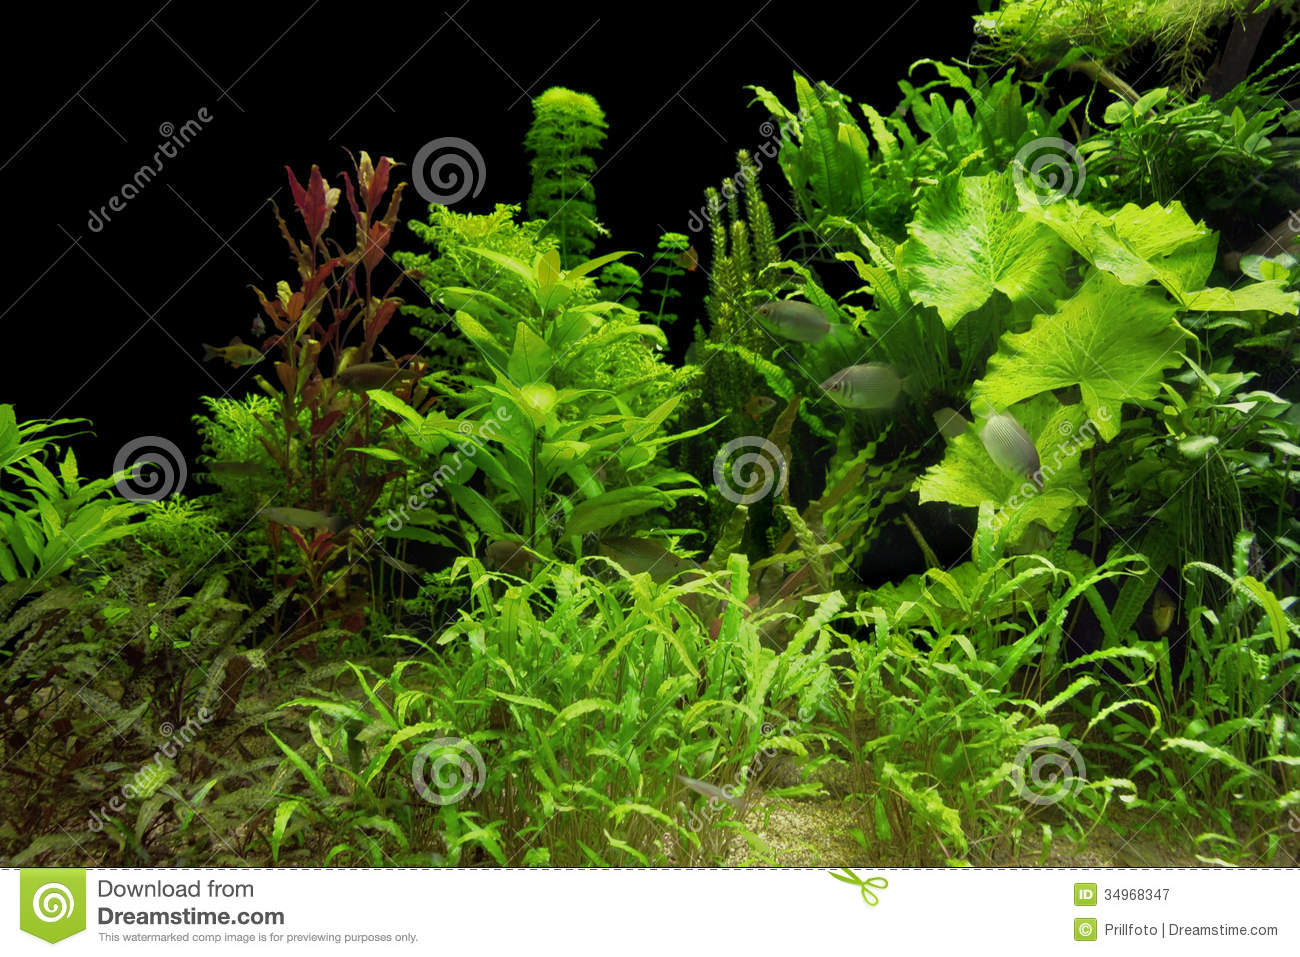 Water plants royalty free stock photography image 34968347 for Underwater pond plants